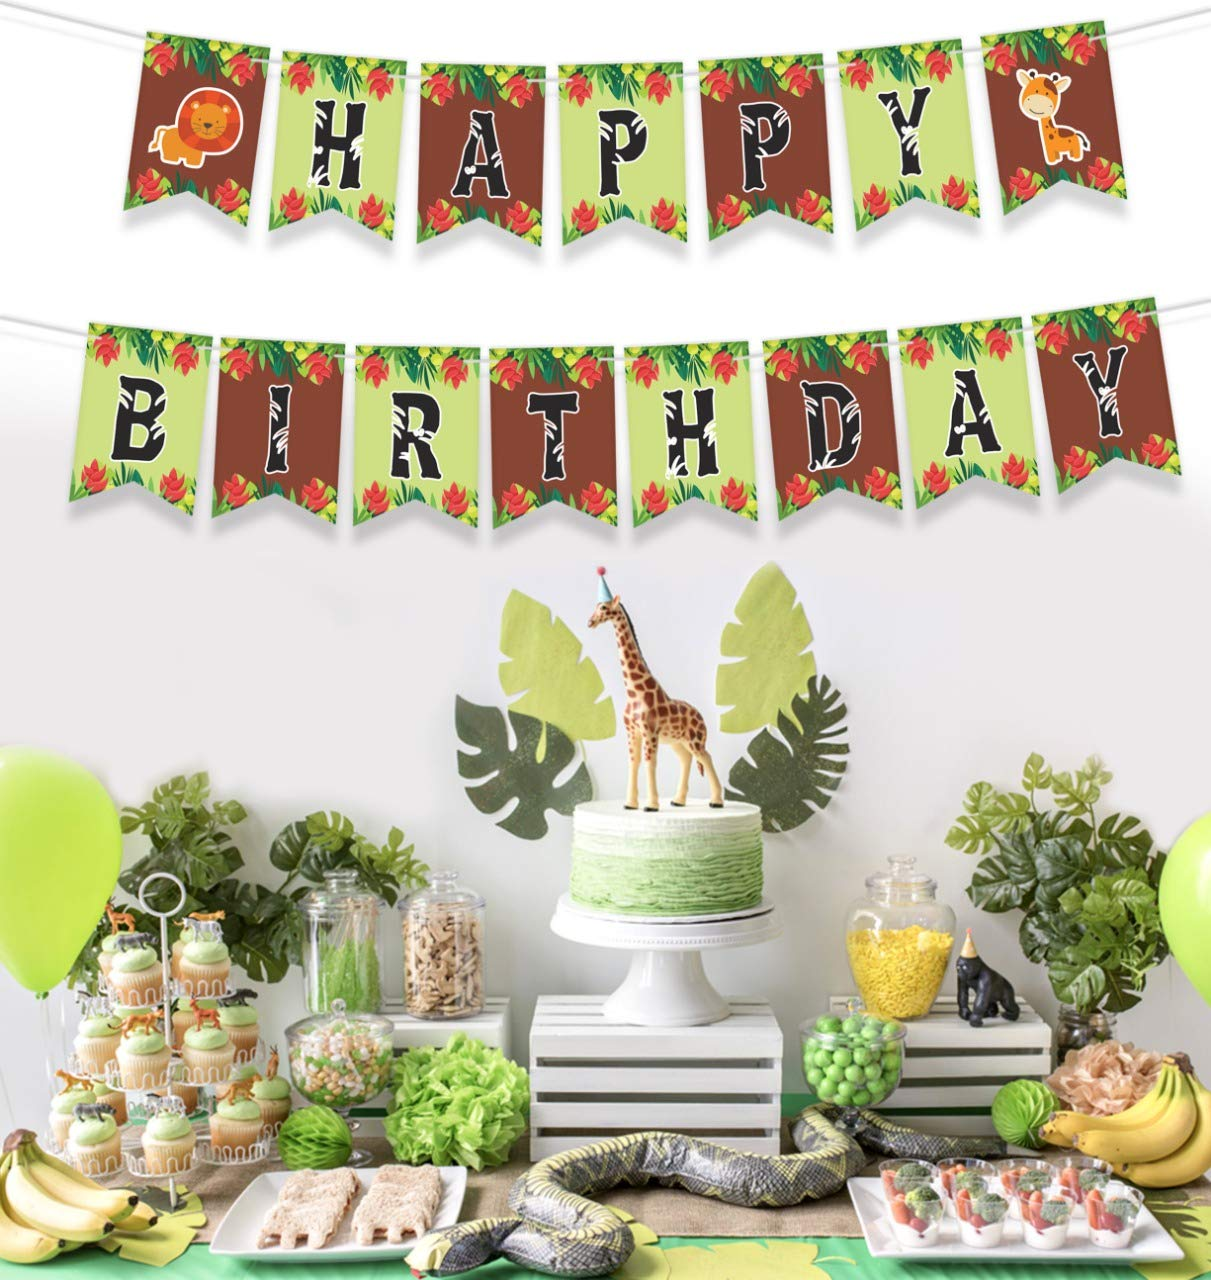 Forest Theme Birthday Banner JUNGLE THEMED HAPPY BIRTHDAY BANNER Animal Baby Shower Decorations Animal Birthday Party Decorations Baby Animals Decorations 8*5.5 Inches Forest Animals Birthday Party Decor Jungle Safari Party Supplies